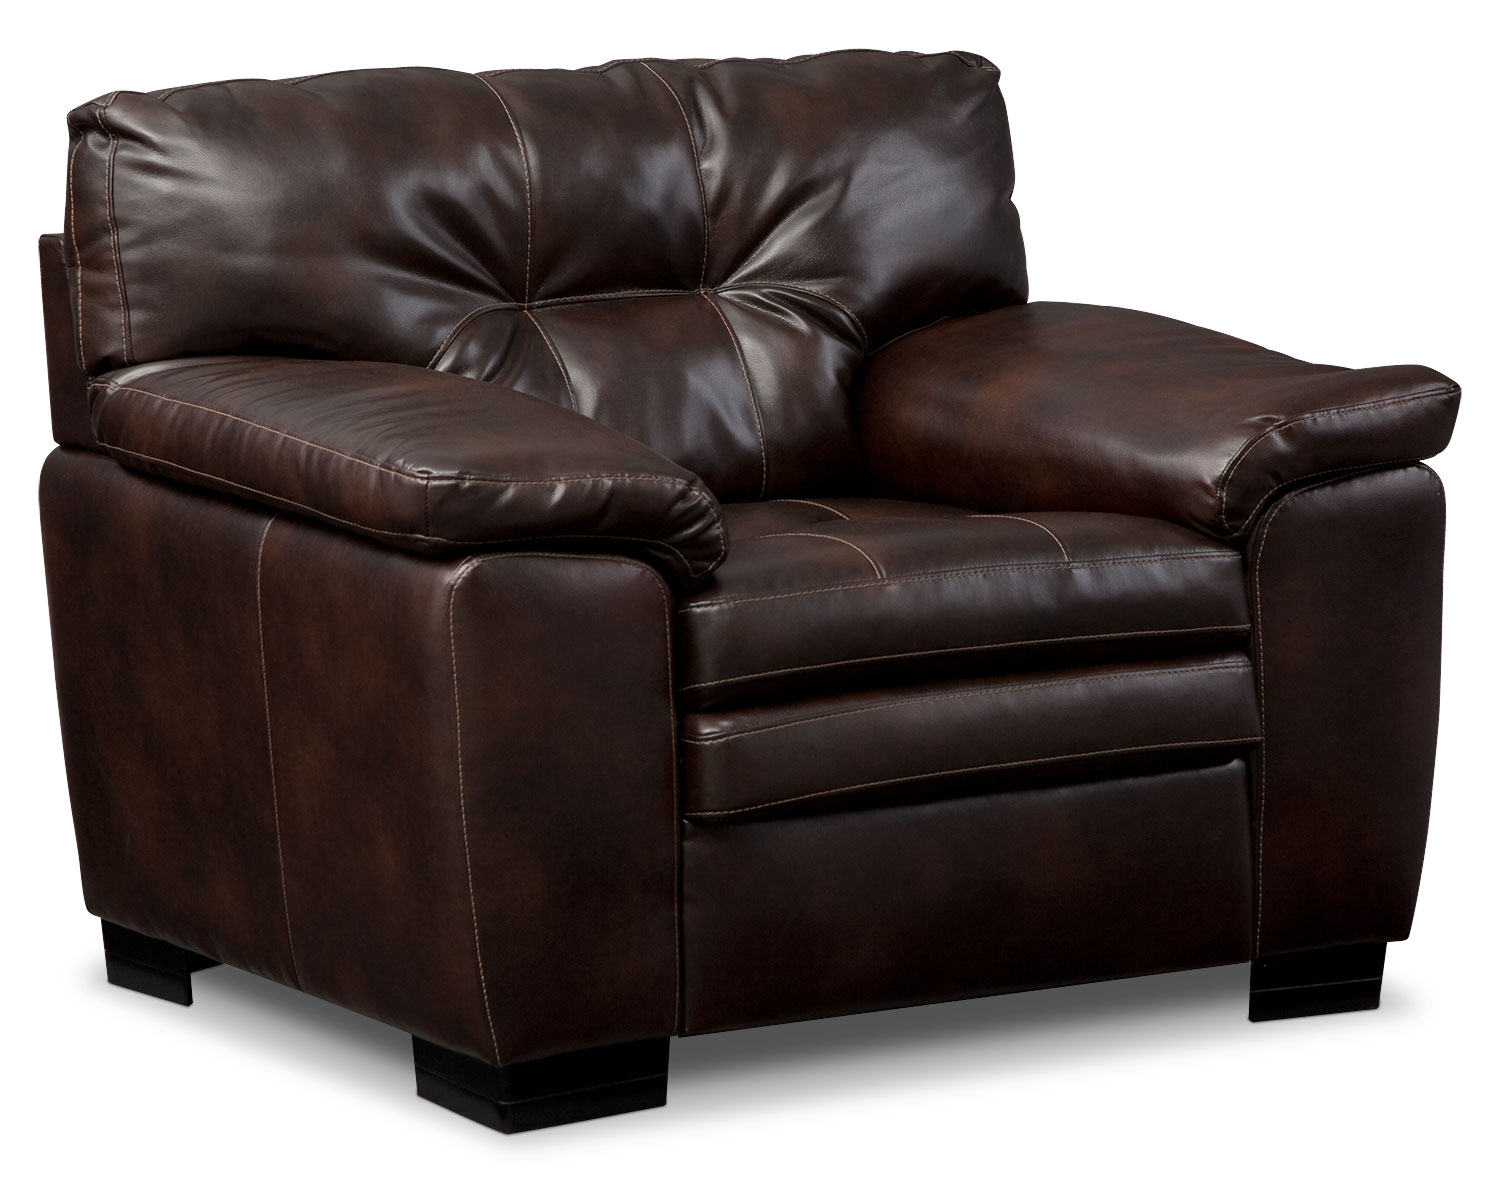 Living Room Furniture - Magnum Chair - Brown